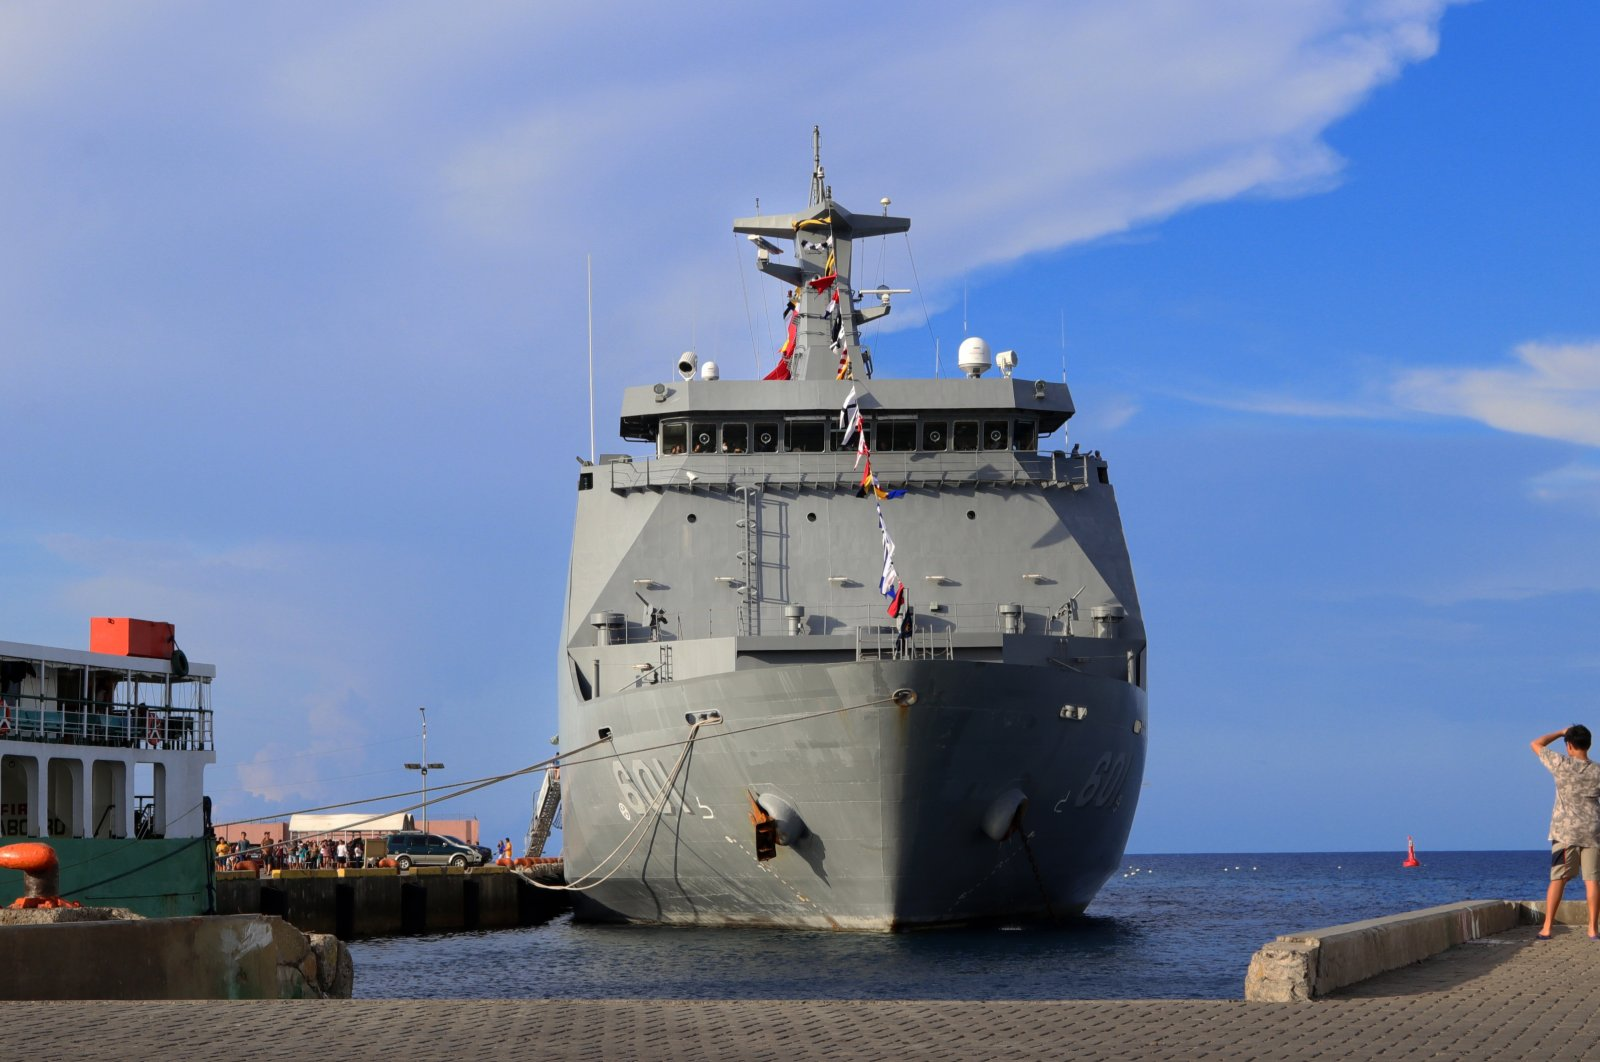 The Philippine navy's BRP Tarlac (LD-601) docked during Independence Day celebrations at the port of Dumaguete City, Negros Oriental, Philippines, June 13, 2019. (Shutterstock Photo)